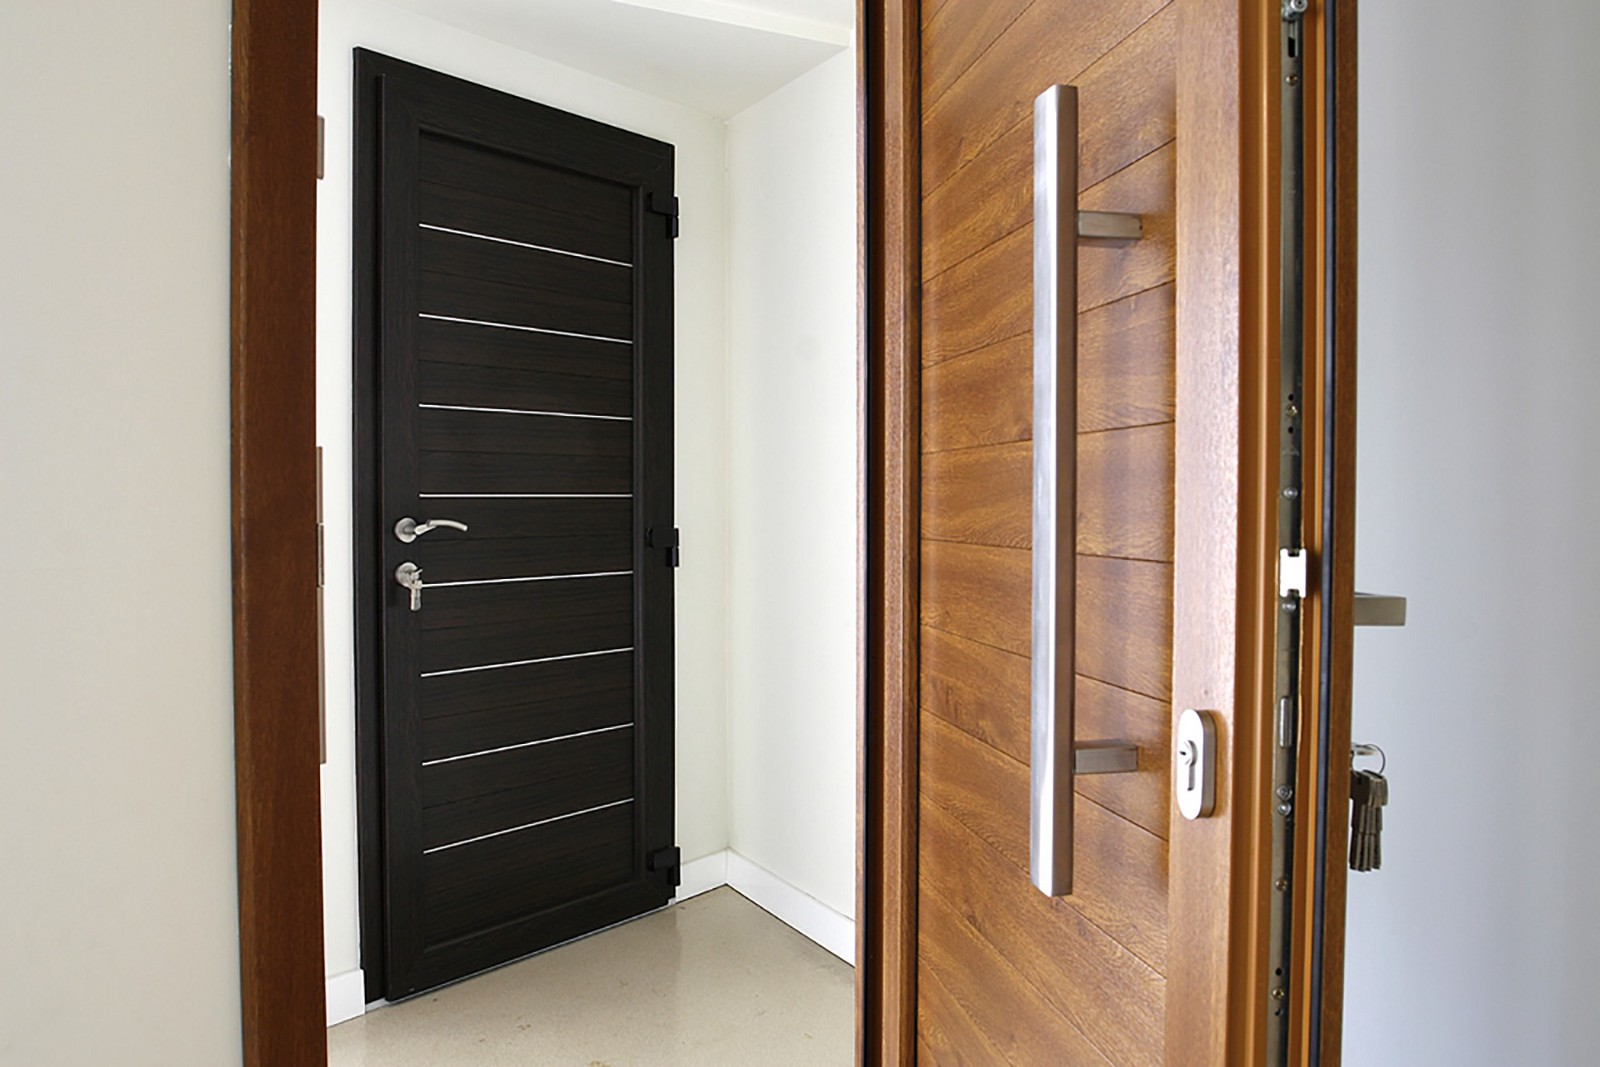 They Tend To Be More Expensive Than Upvc Front Doors But If You Around Can Find Affordable Options Composite Require Hardly Any Maintenance